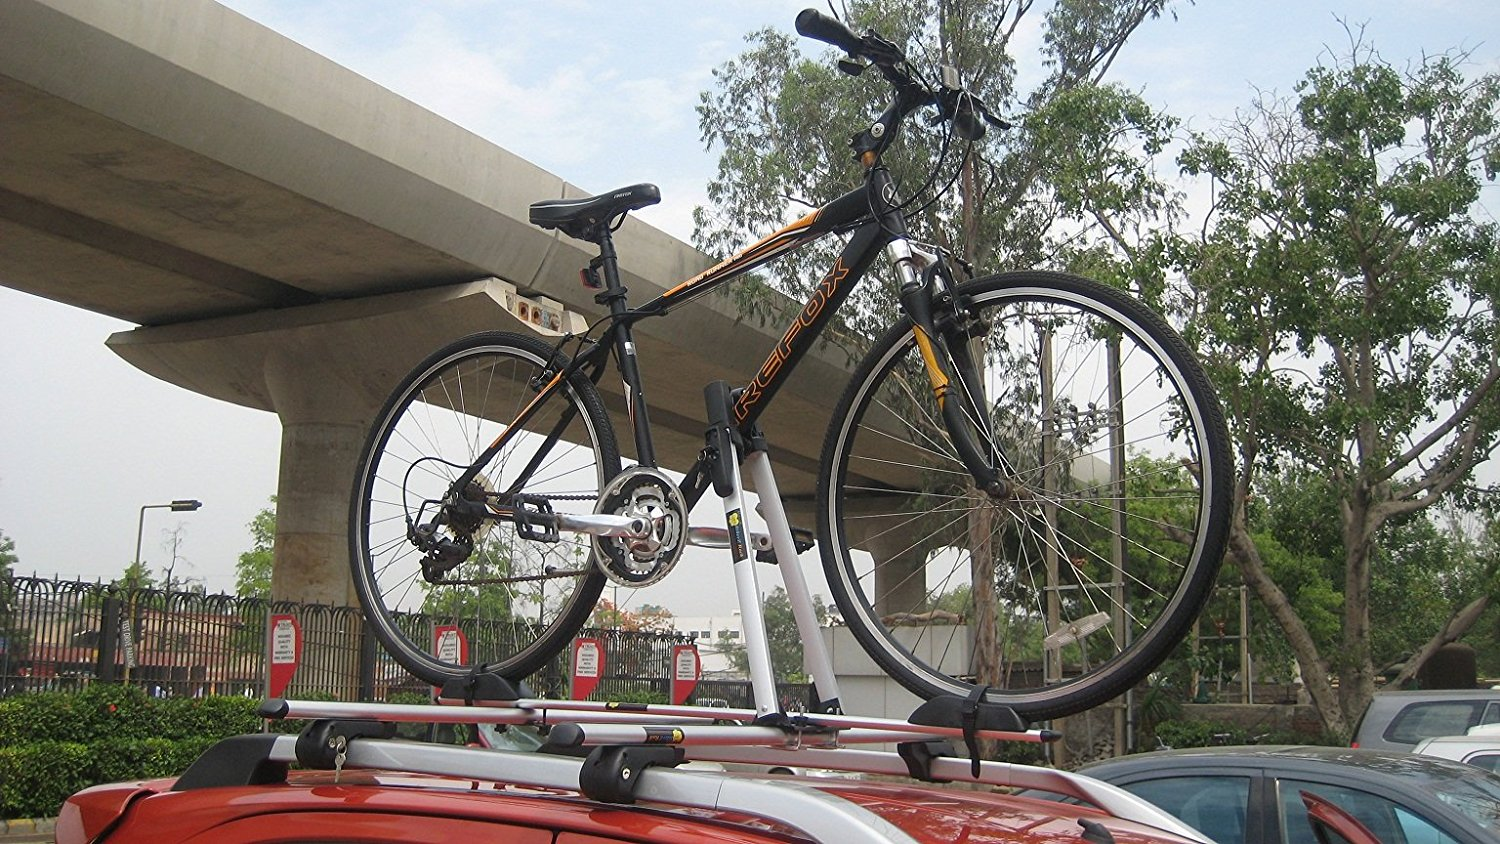 Best Roof Cycle Carrier for Car India